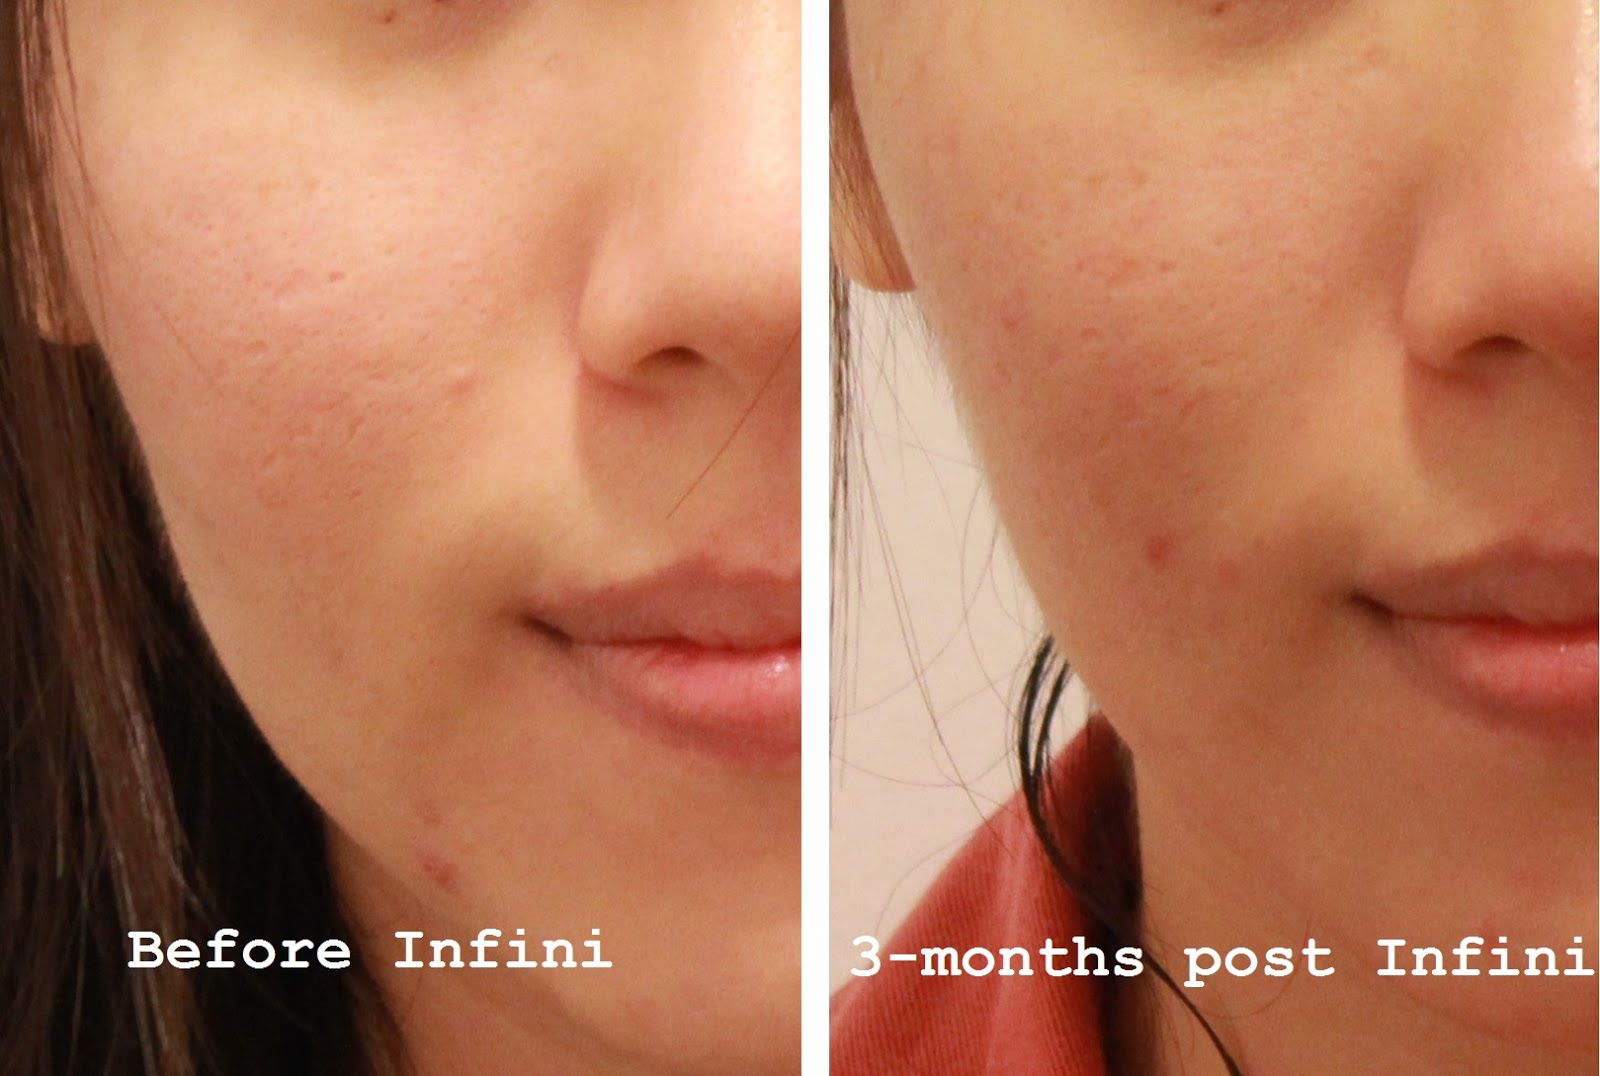 Treatment] Infini Fractional Radiofrequency for Depressed Acne Scars